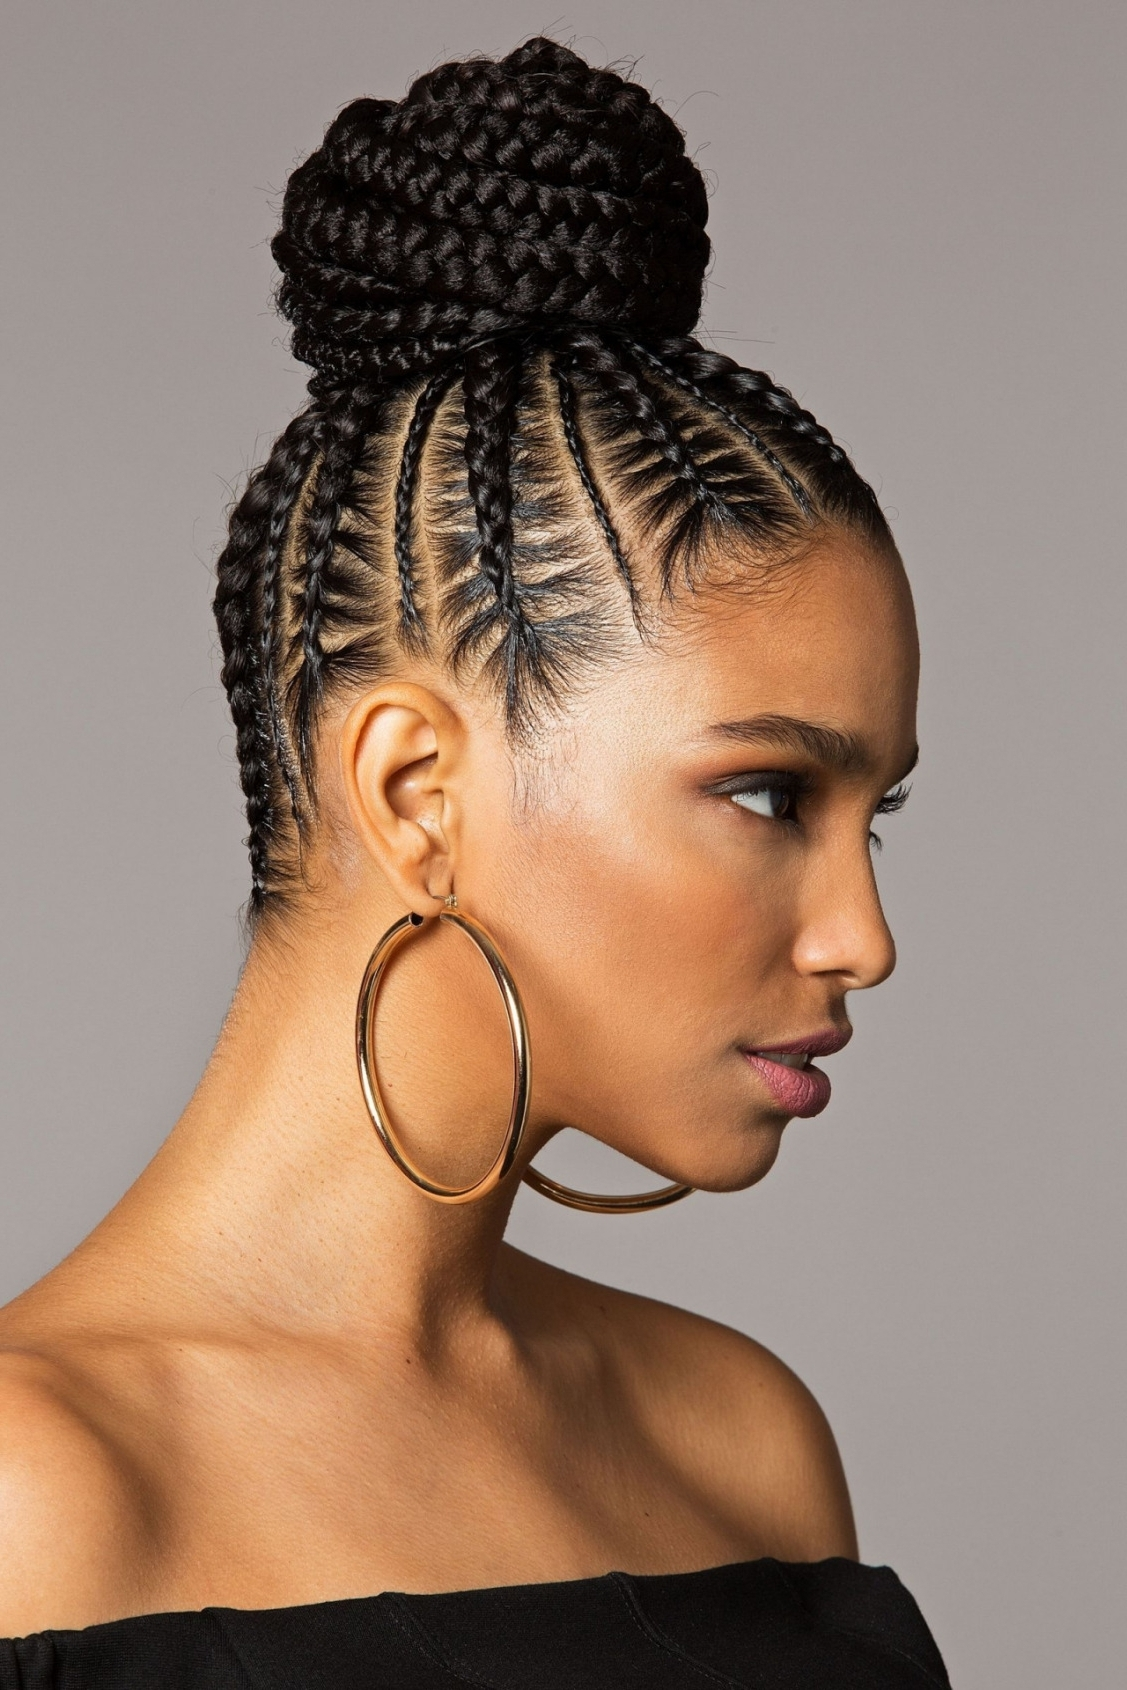 Popular Black Cornrows Hairstyles Intended For Cornrow Updo Hairstyles For Black Women 2018 – Twelveminutemuse (View 10 of 15)